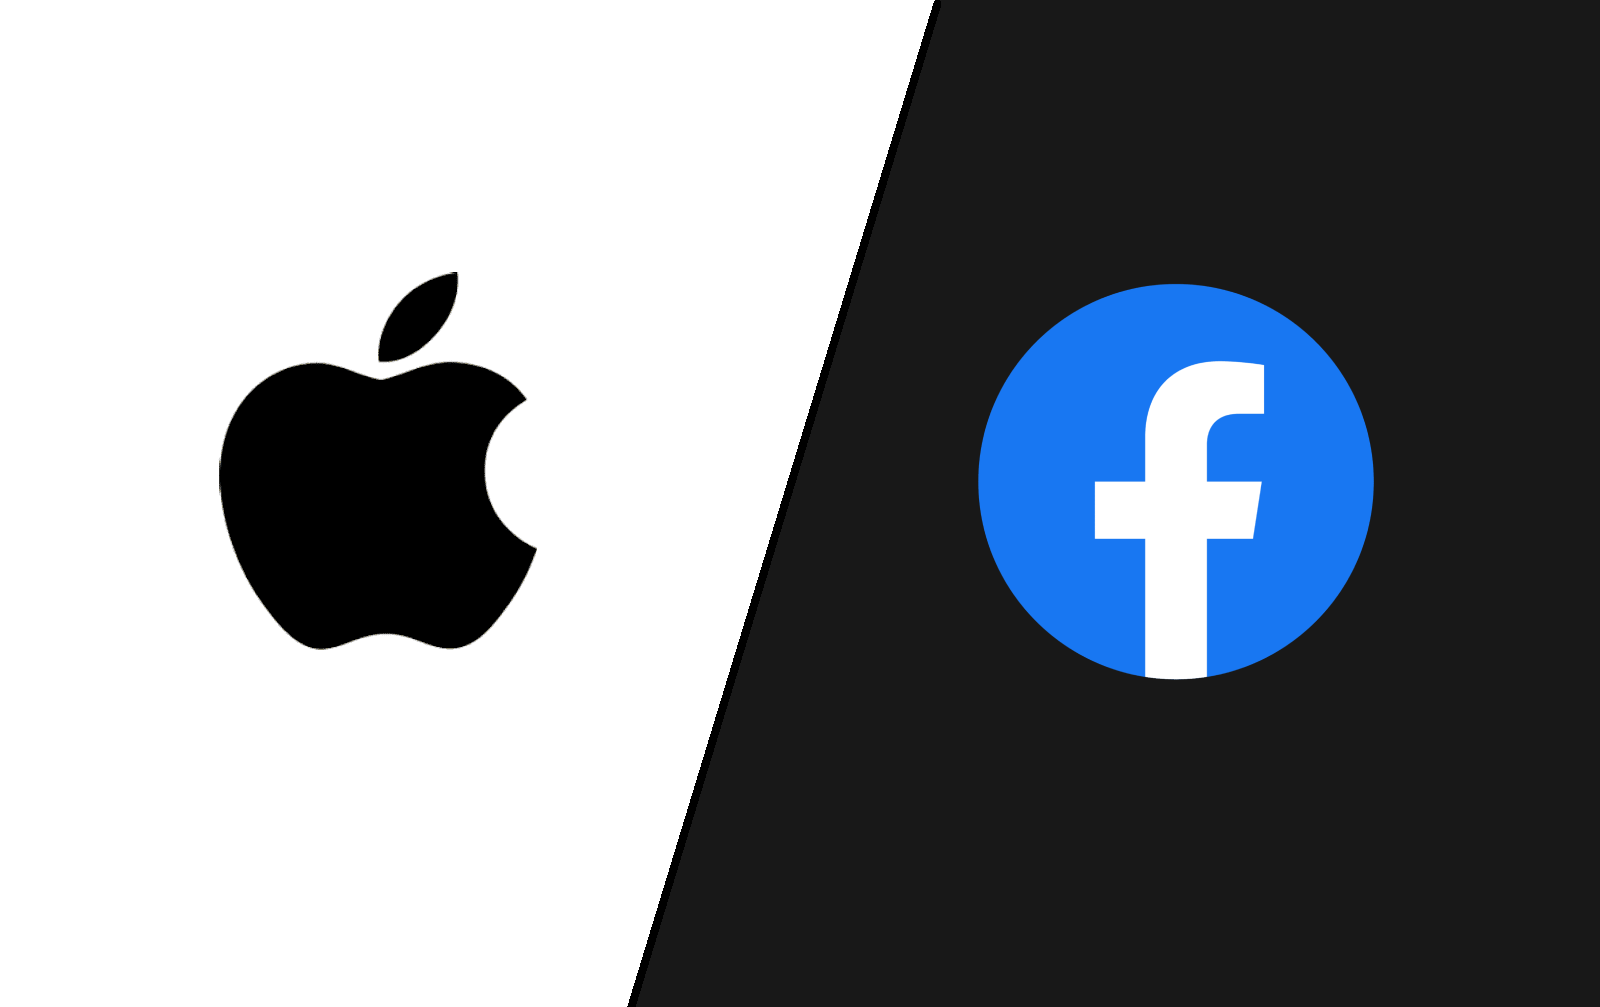 Internal emails of Apple shows that the company had a feud with Facebook over App Store rules as far back as 2011 when Steve Jobs was the CEO of the company